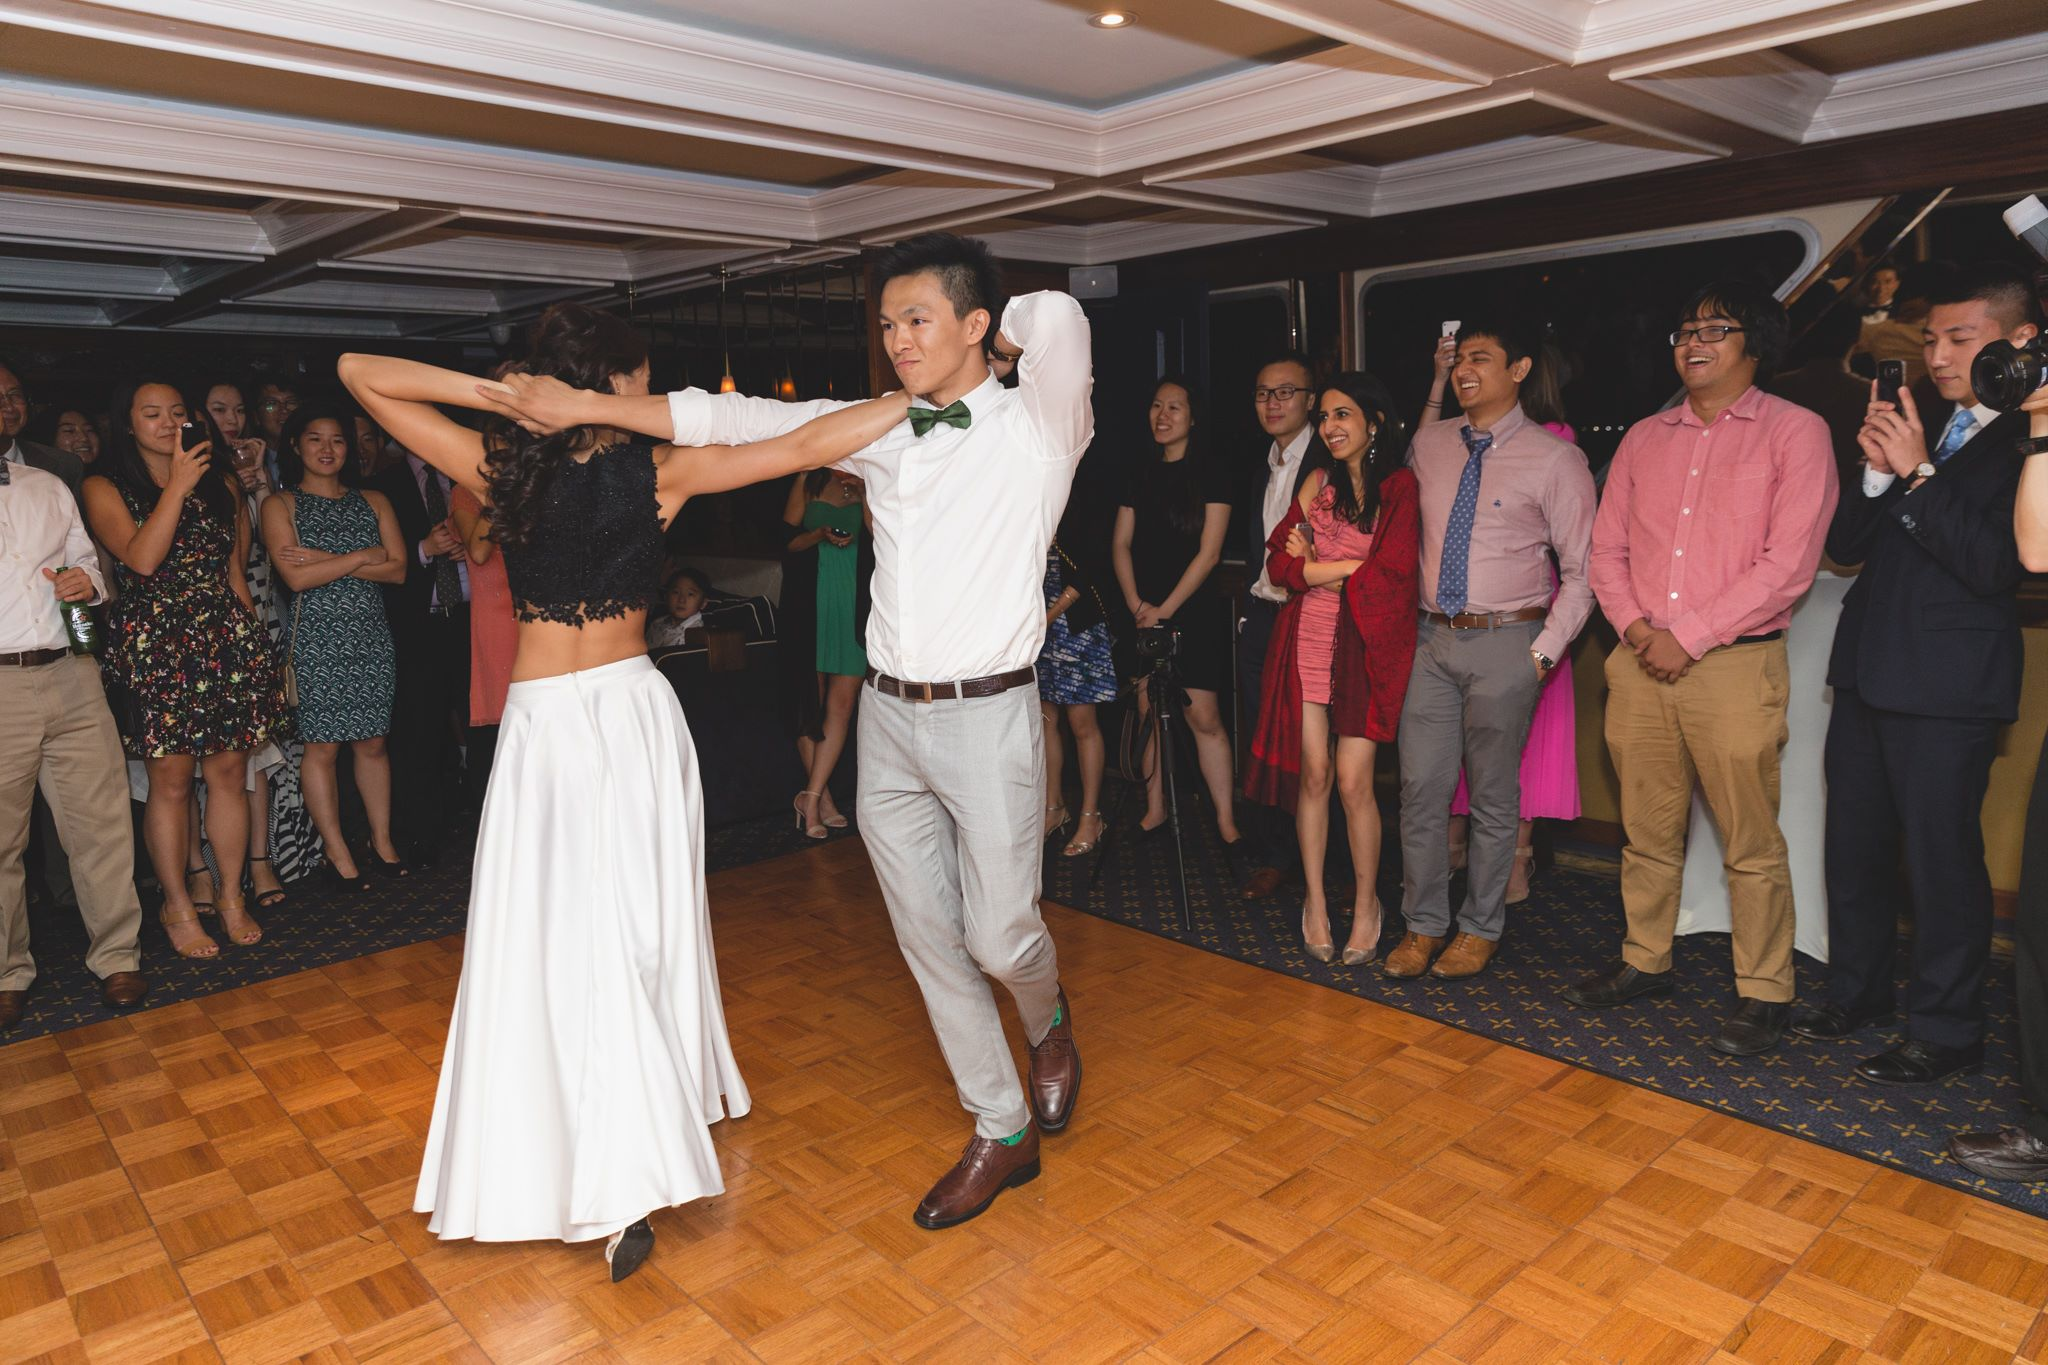 5 Reasons People Dance at Weddings and Social Events